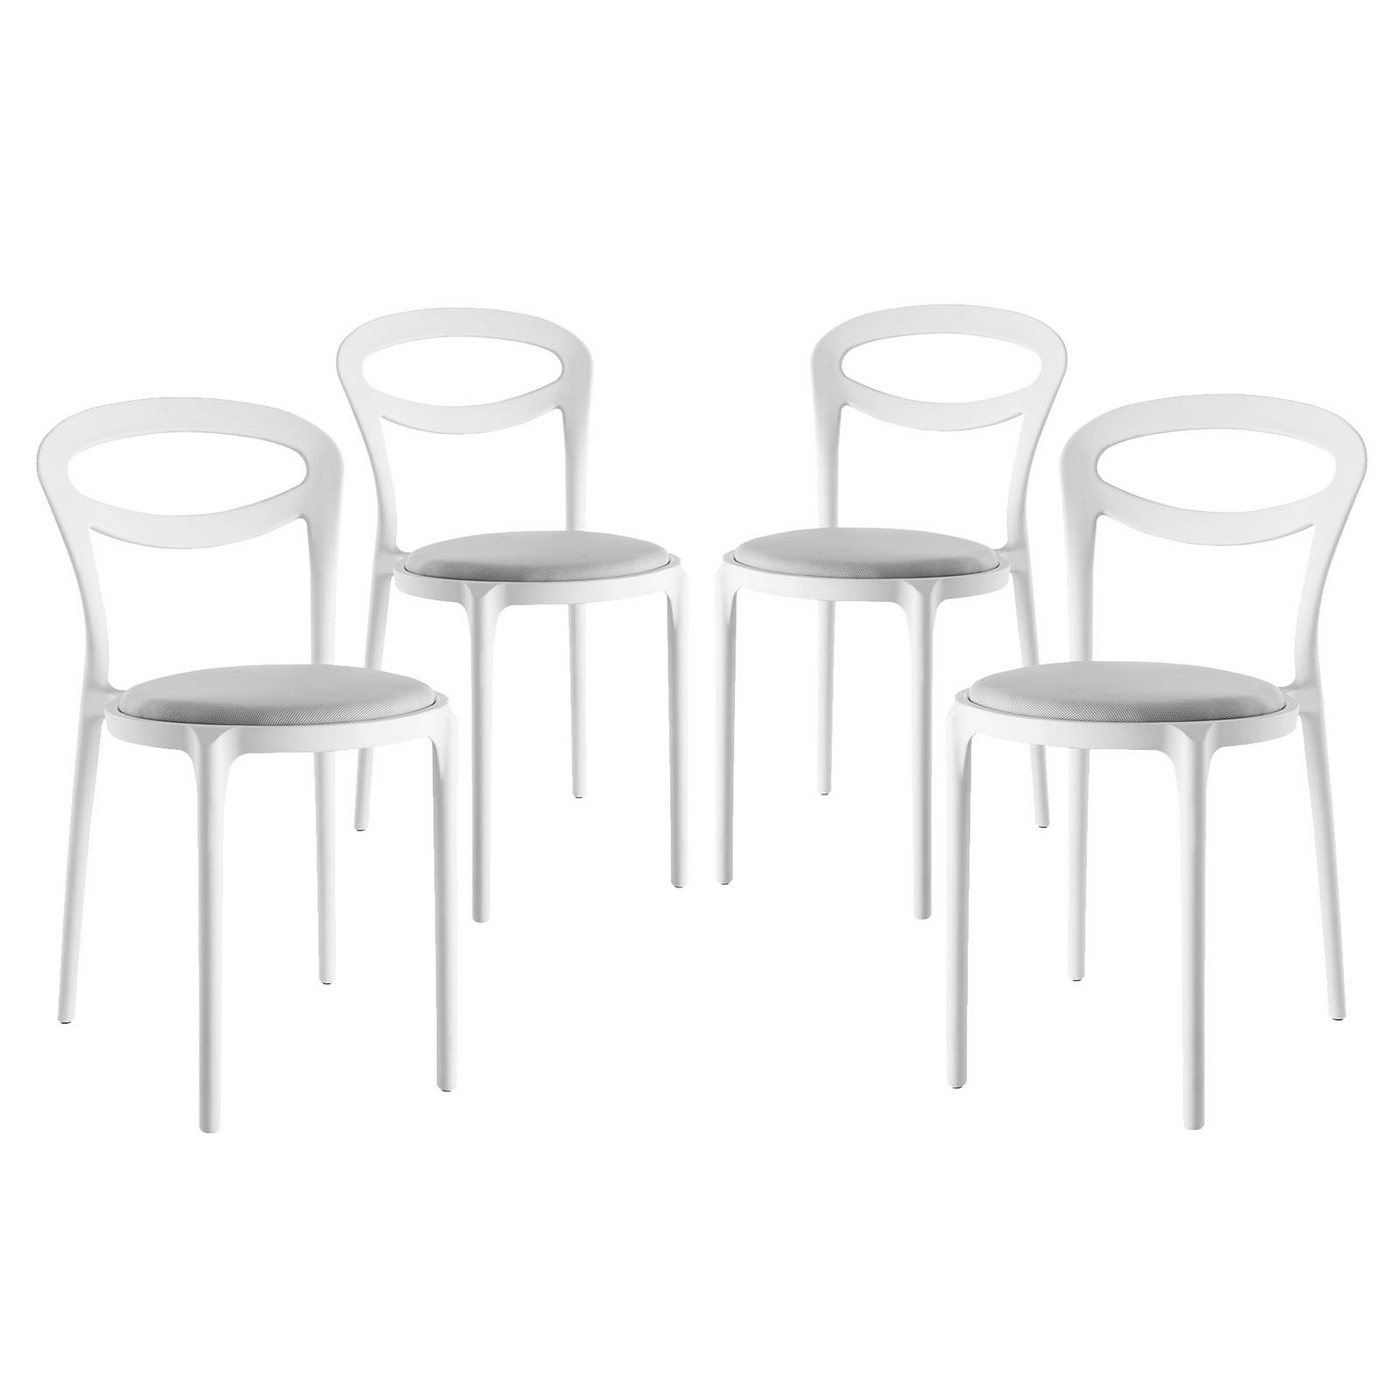 Set Of 4 Assist Modern Molded Plastic Side Chair W Padded